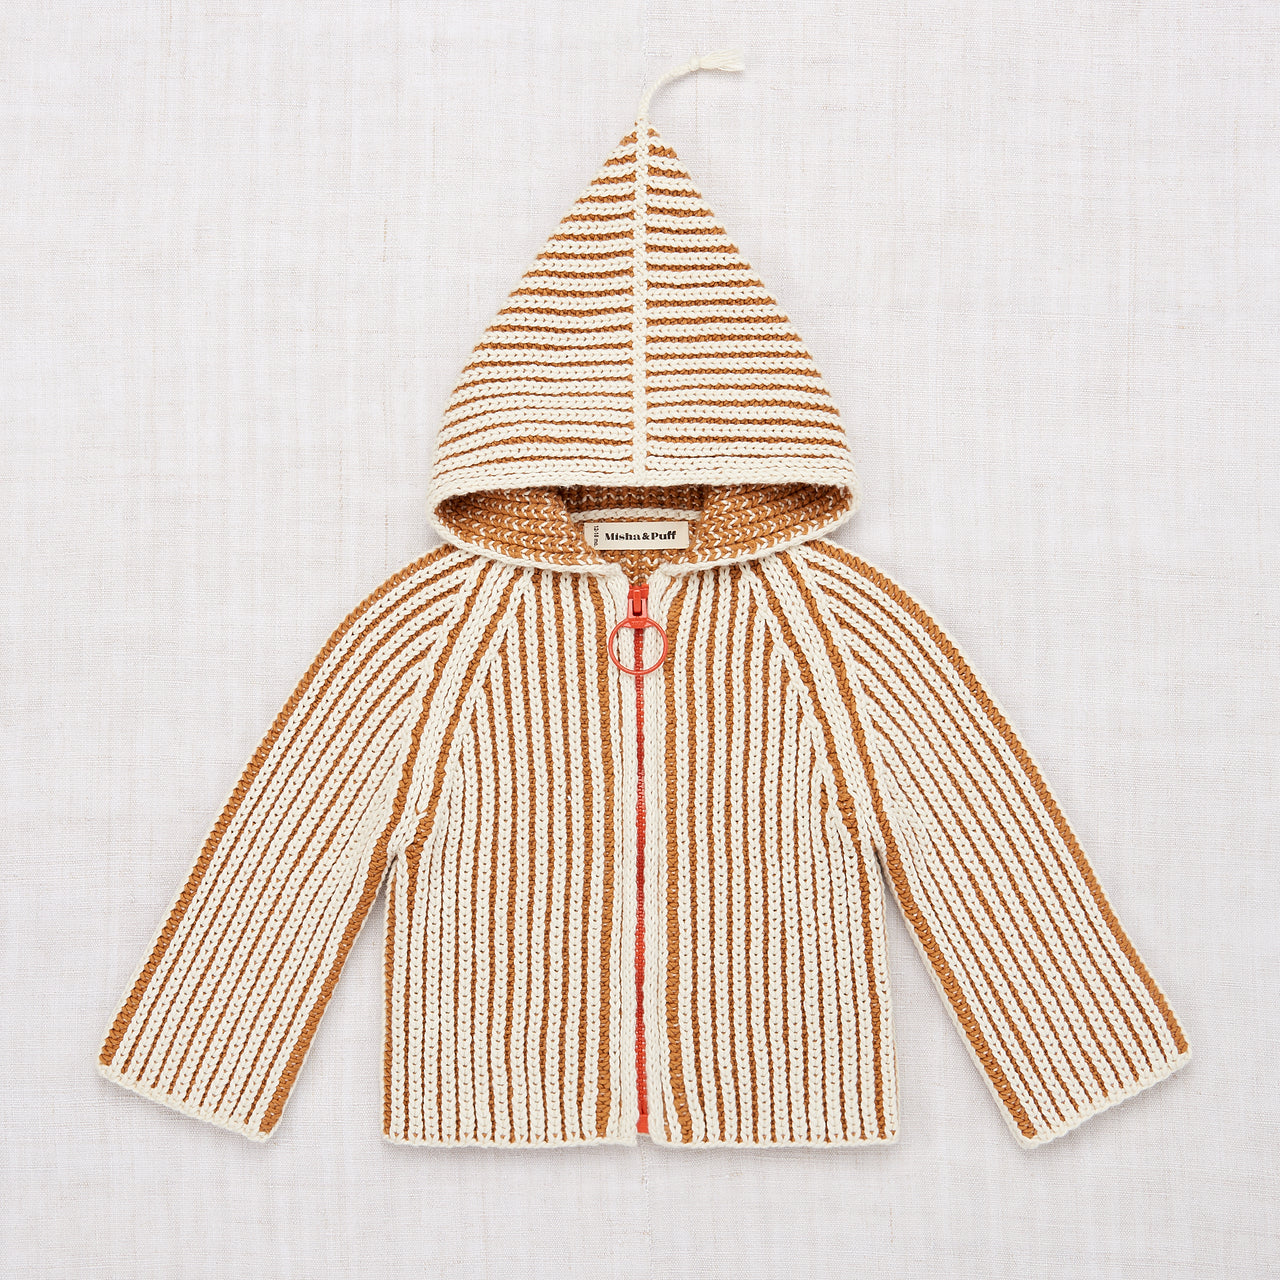 Plum Island Beach Jacket - Caramel